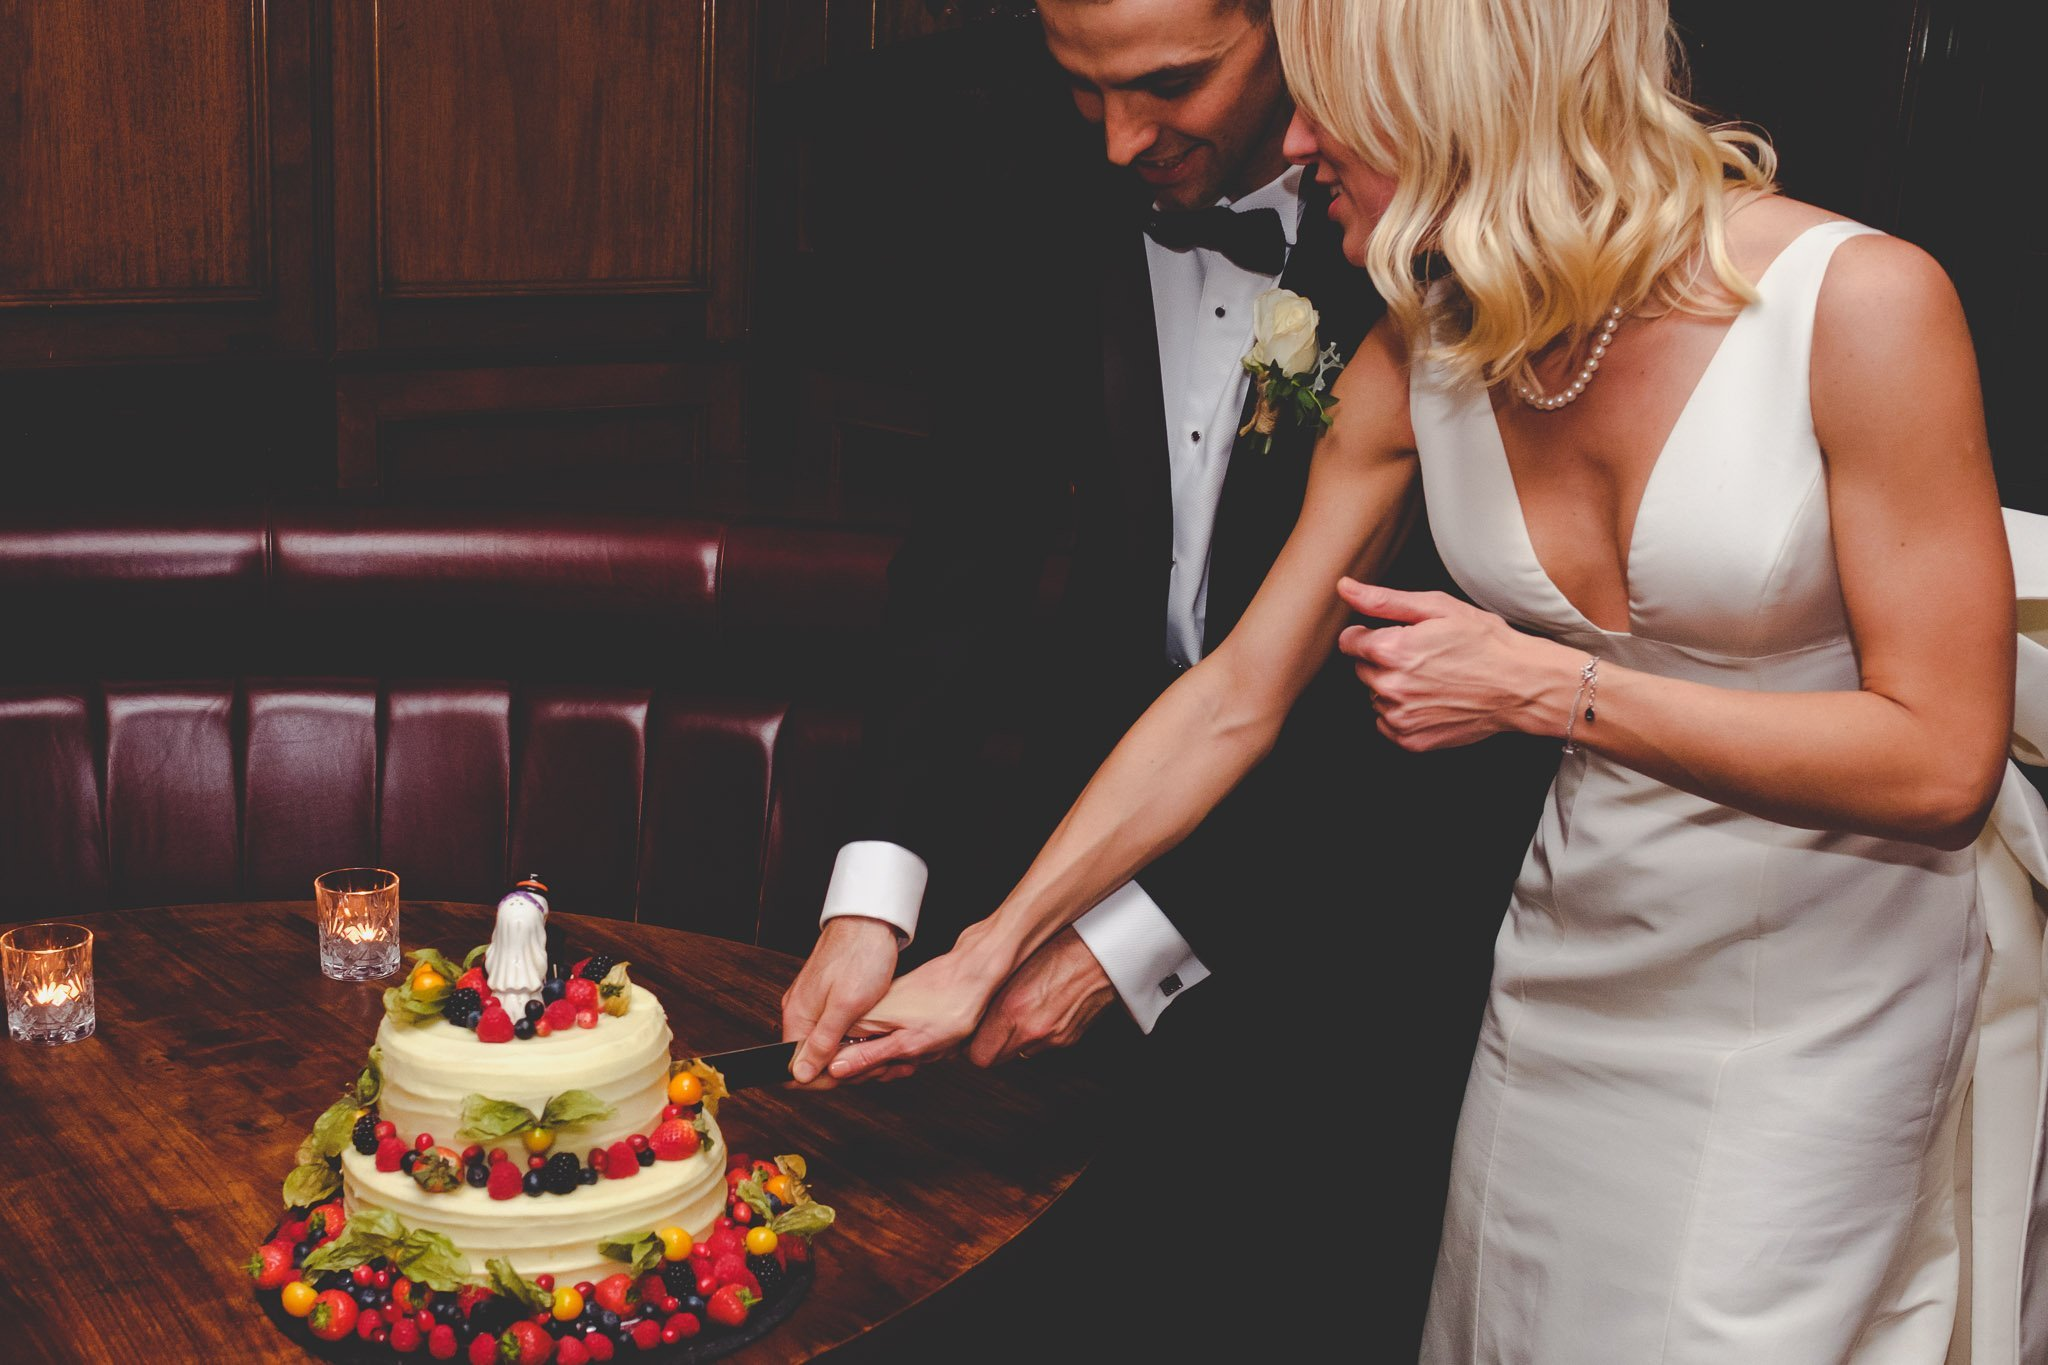 Bride & Groom cutting a cake at Hawksmoor Steakhouse in Guildhall London